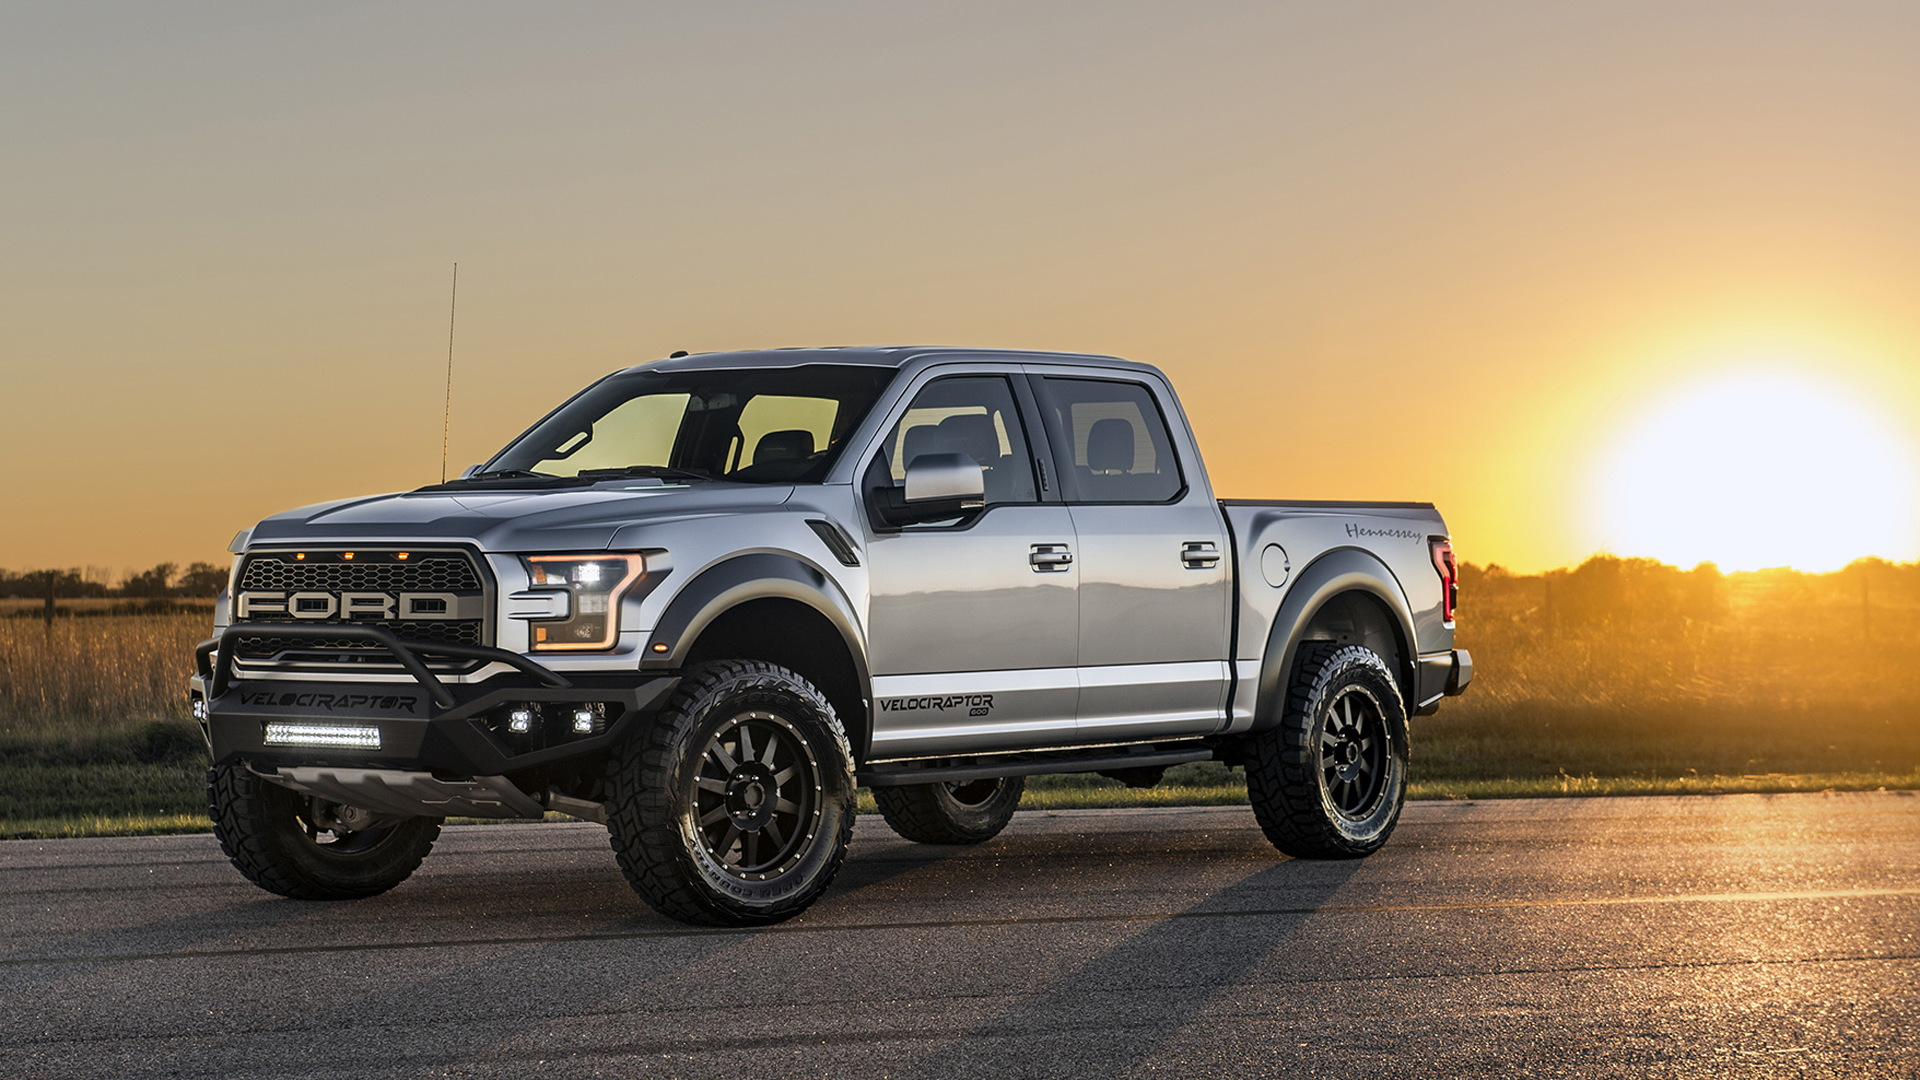 2017 Hennessey VelociRaptor 600 Twin Turbo  based on the Ford F-150 Raptor